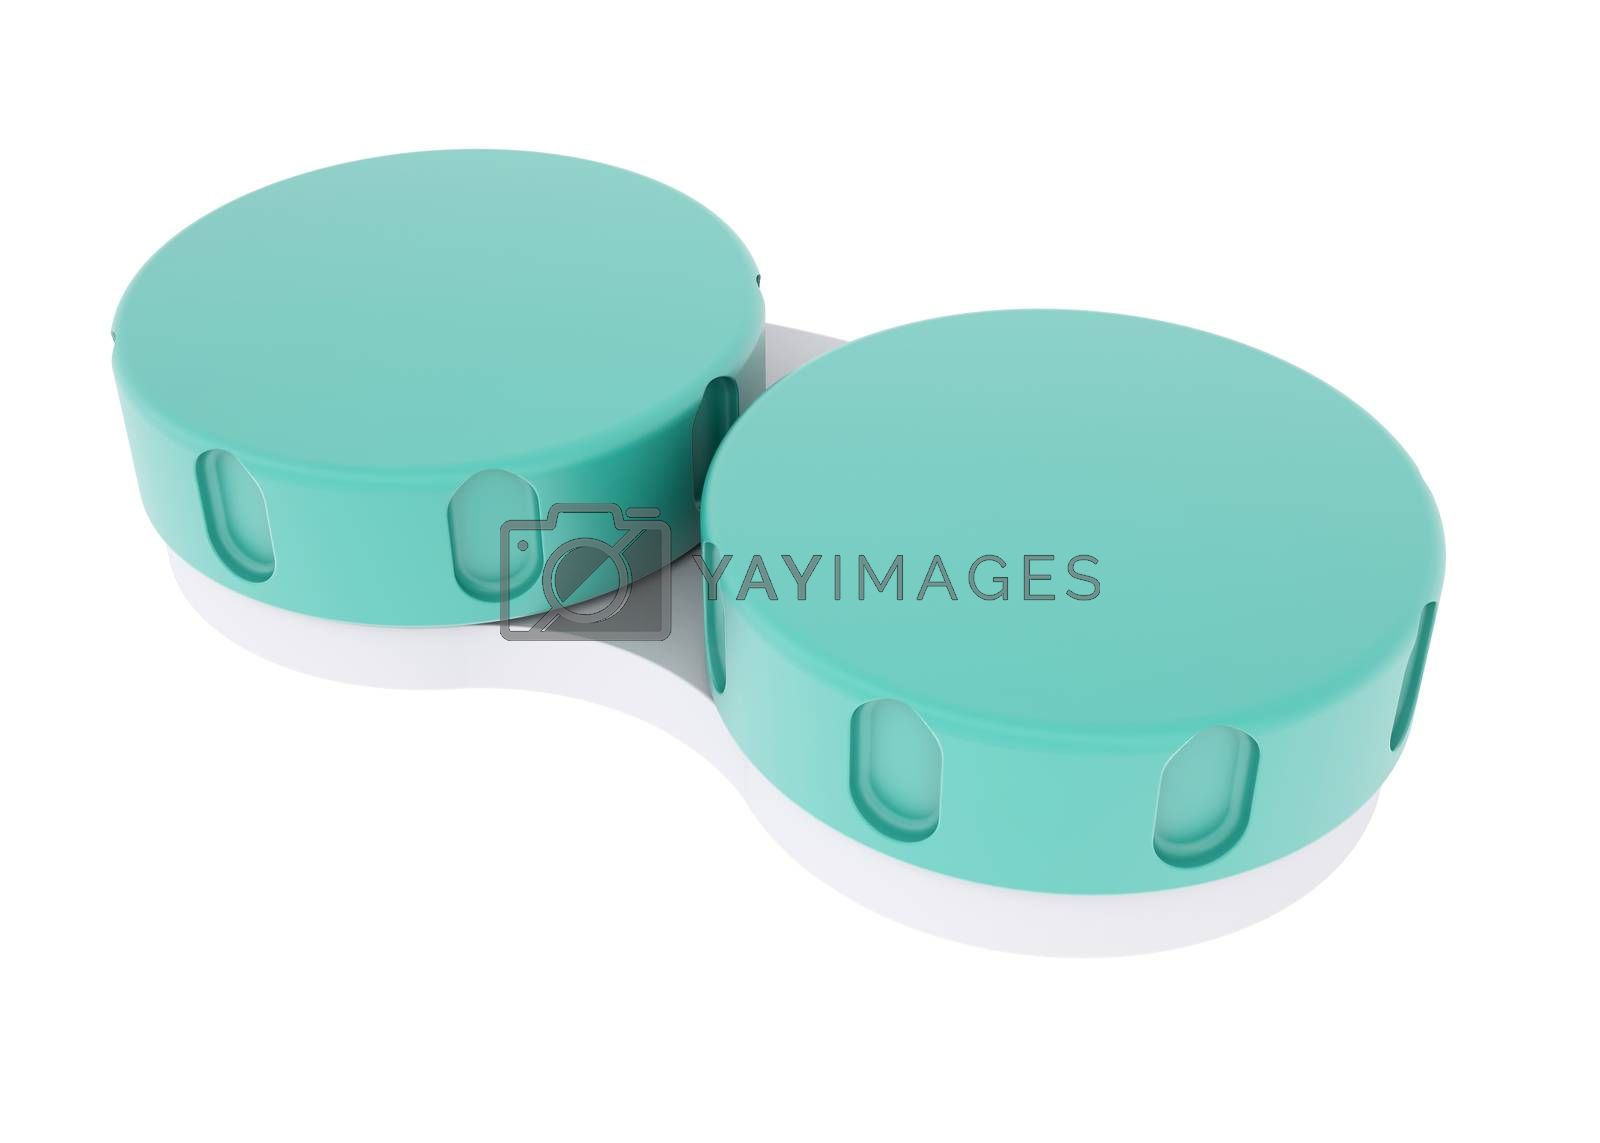 Royalty free image of Container for lens by cherezoff